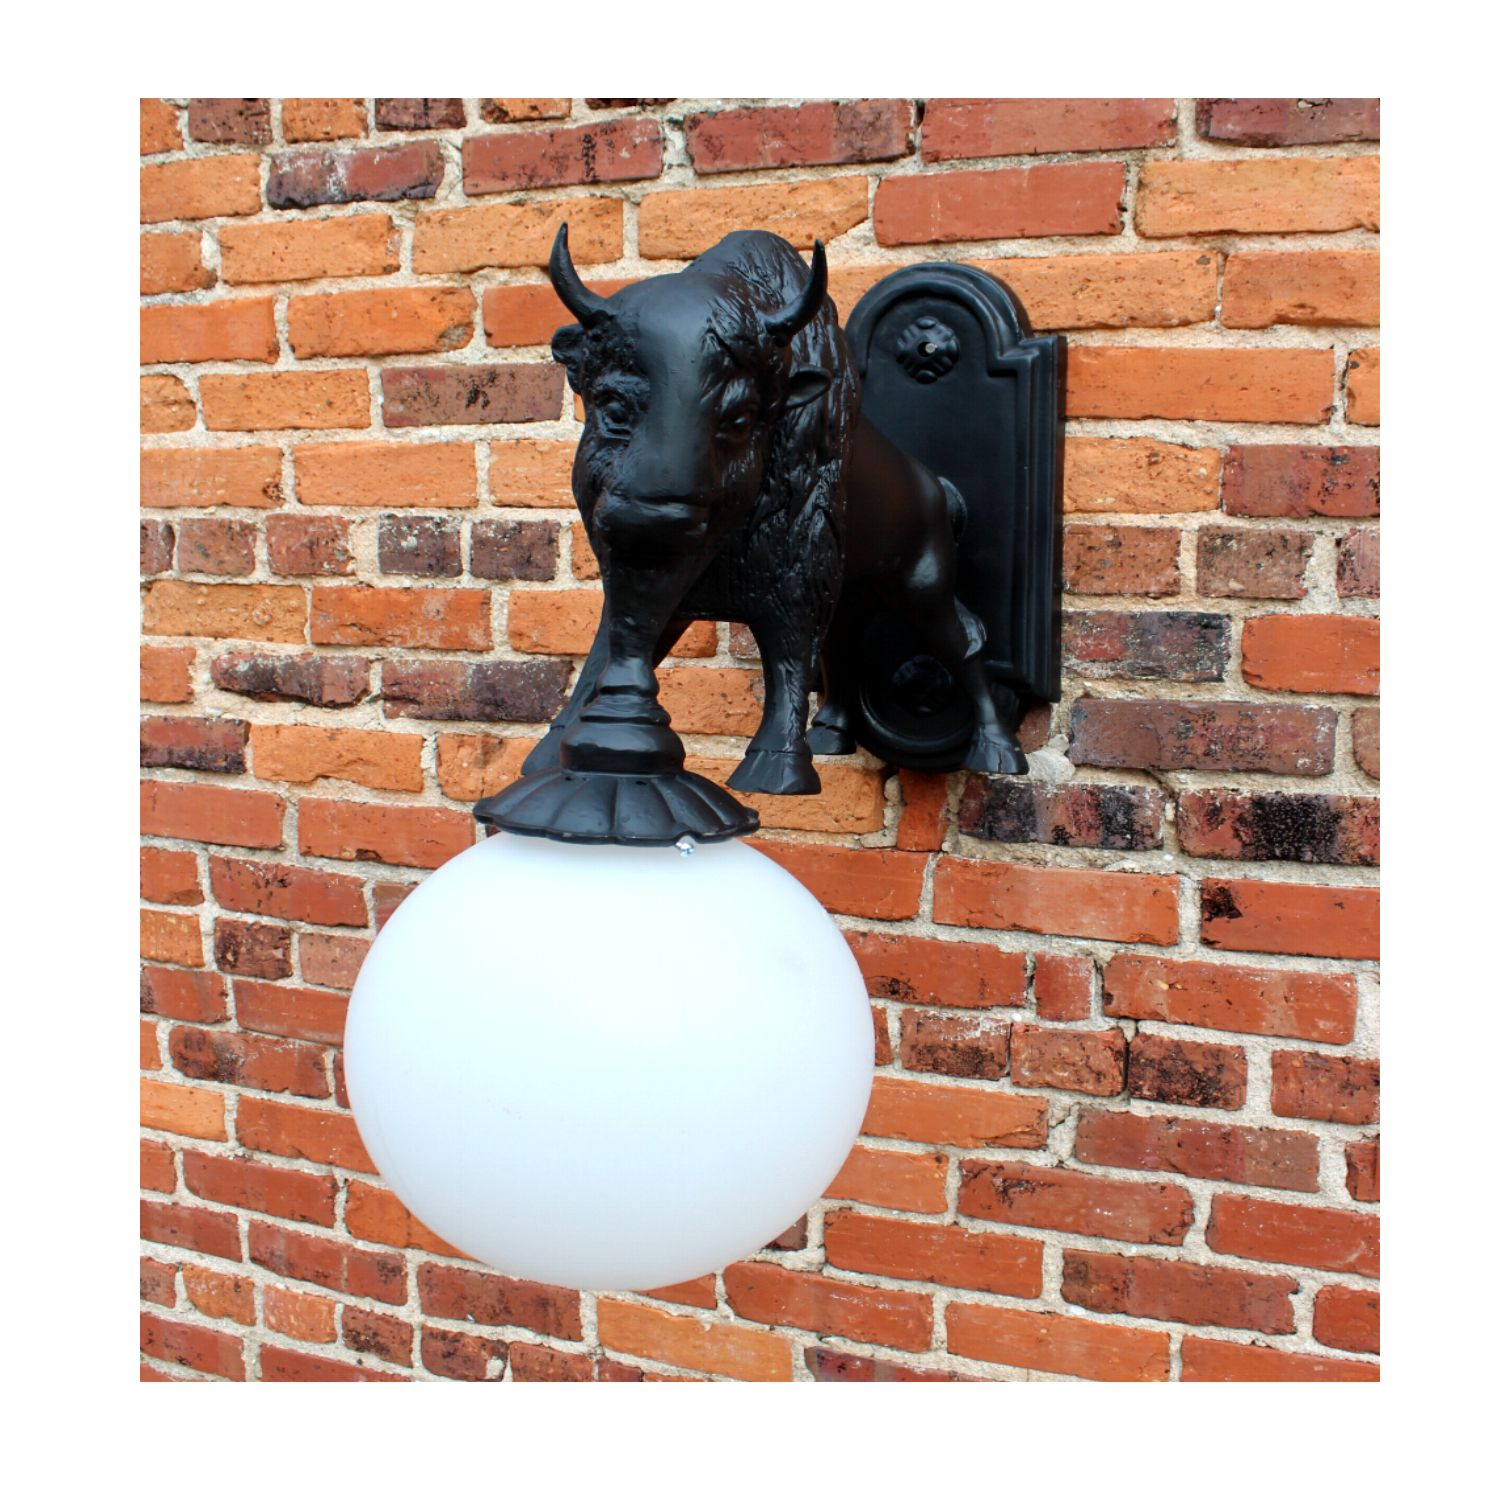 Wall Mount Buffalo Sconce Light Indoor Outdoor Non Rust ... on Non Lighting Sconces id=42829